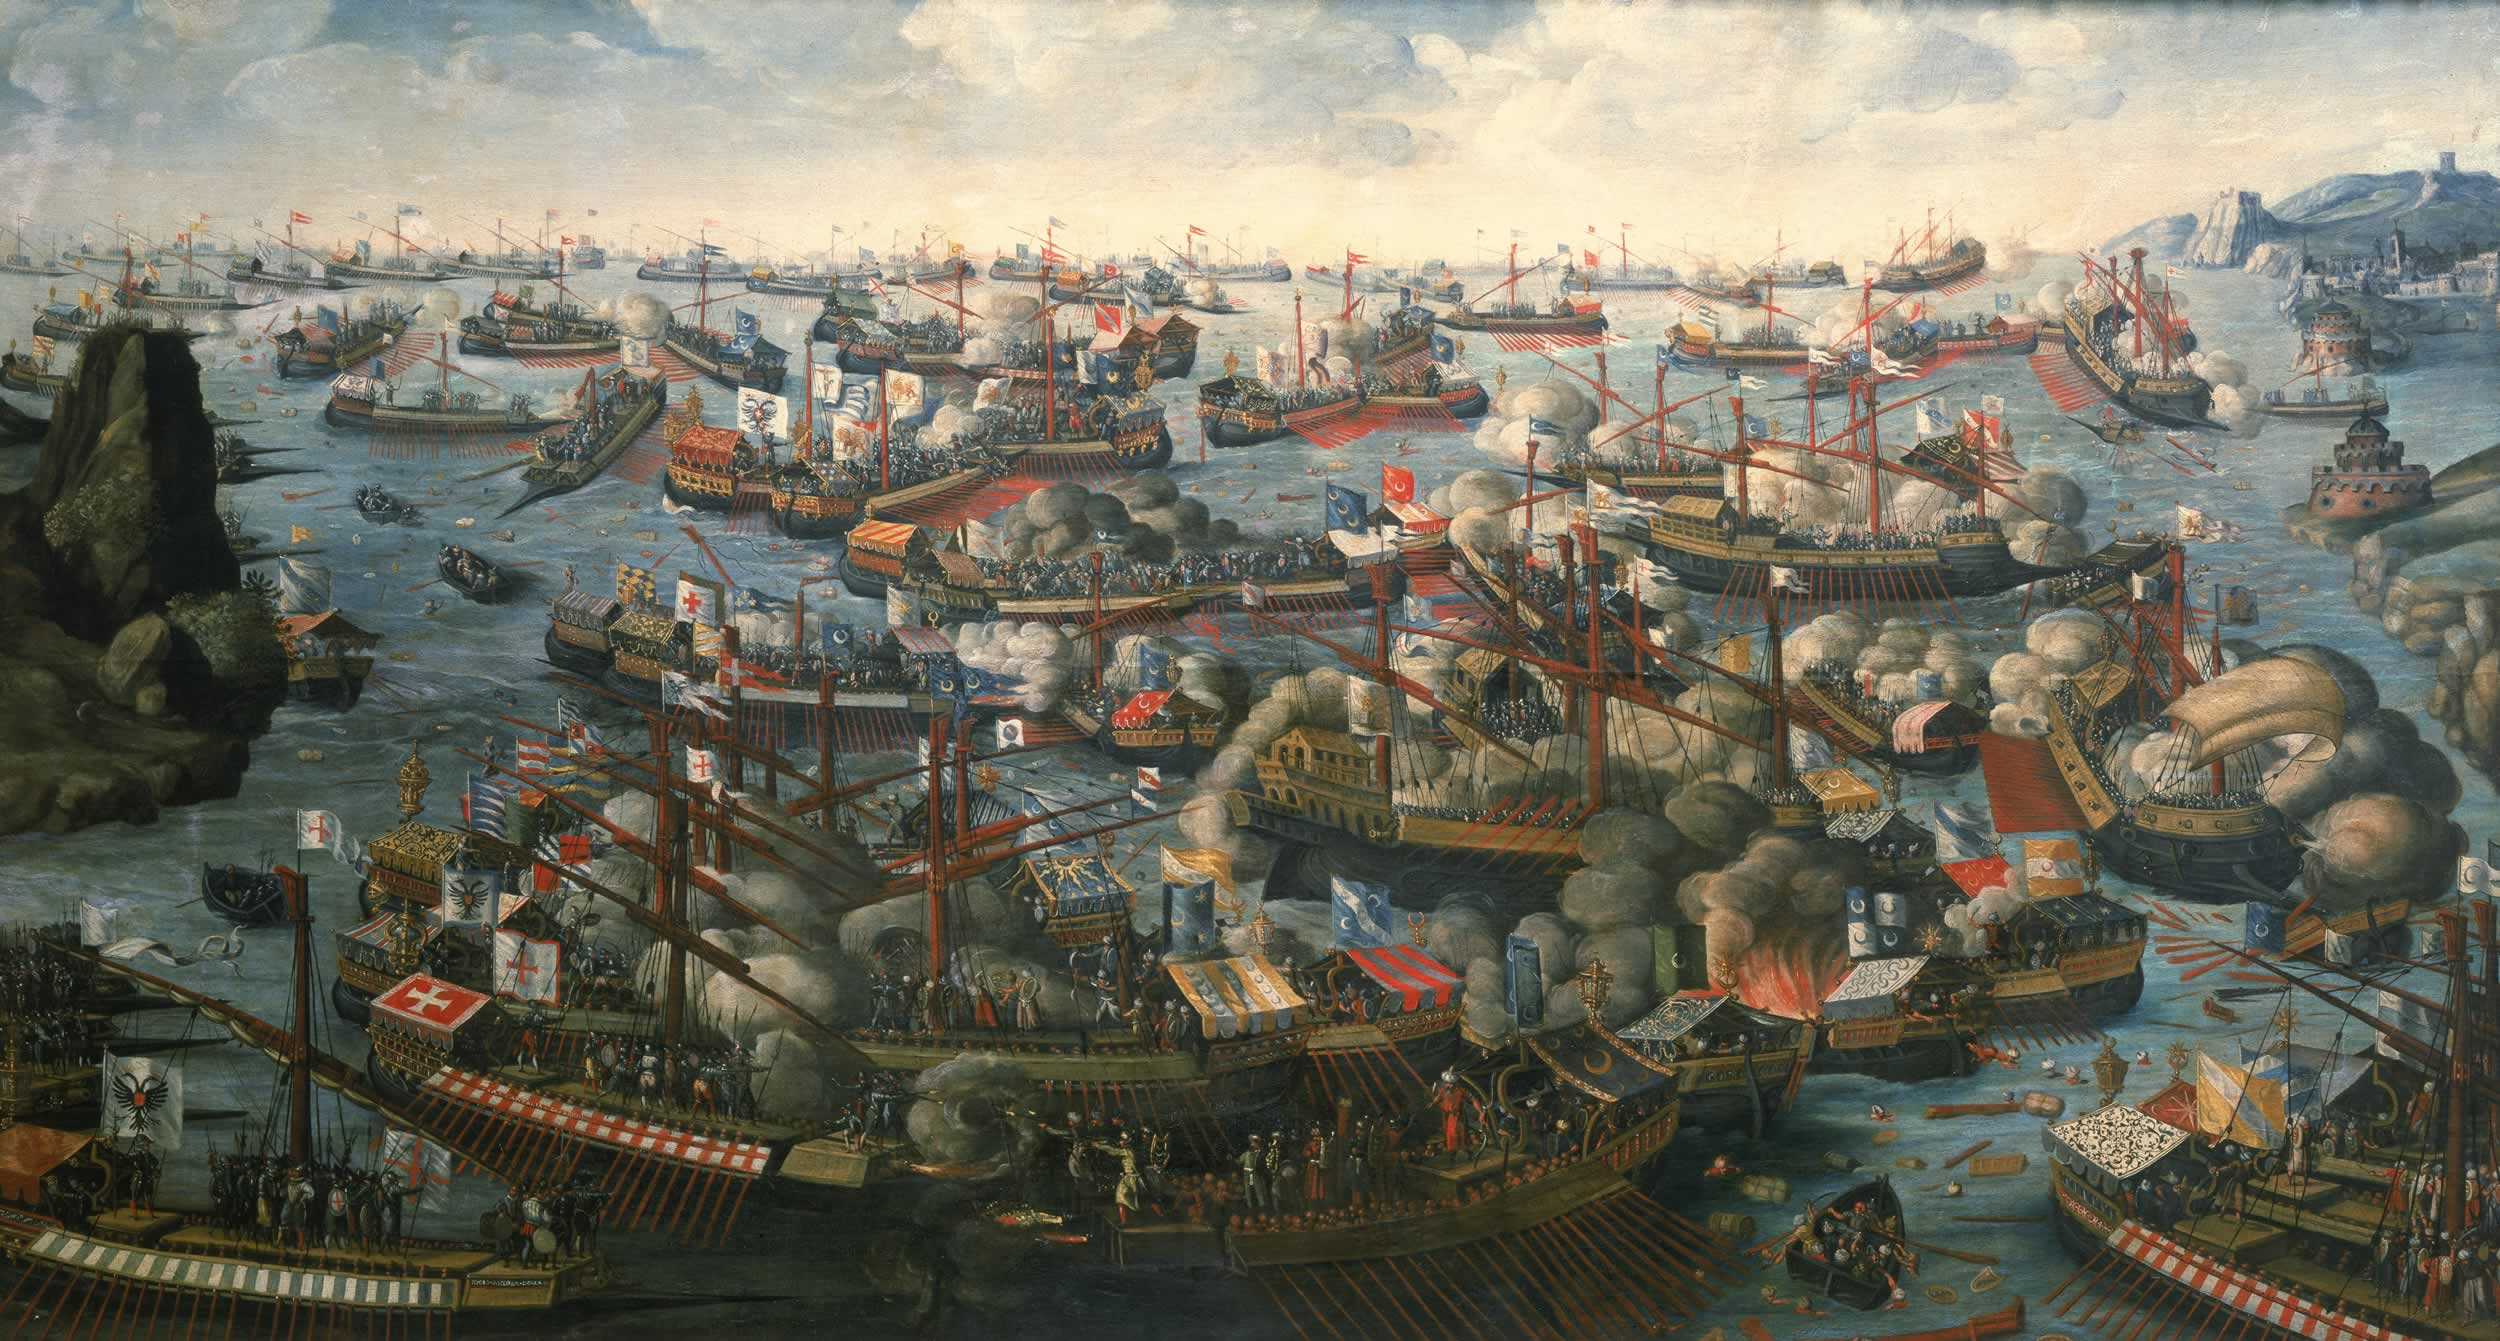 https://historyofwars.files.wordpress.com/2013/10/battle_of_lepanto_1571.jpg